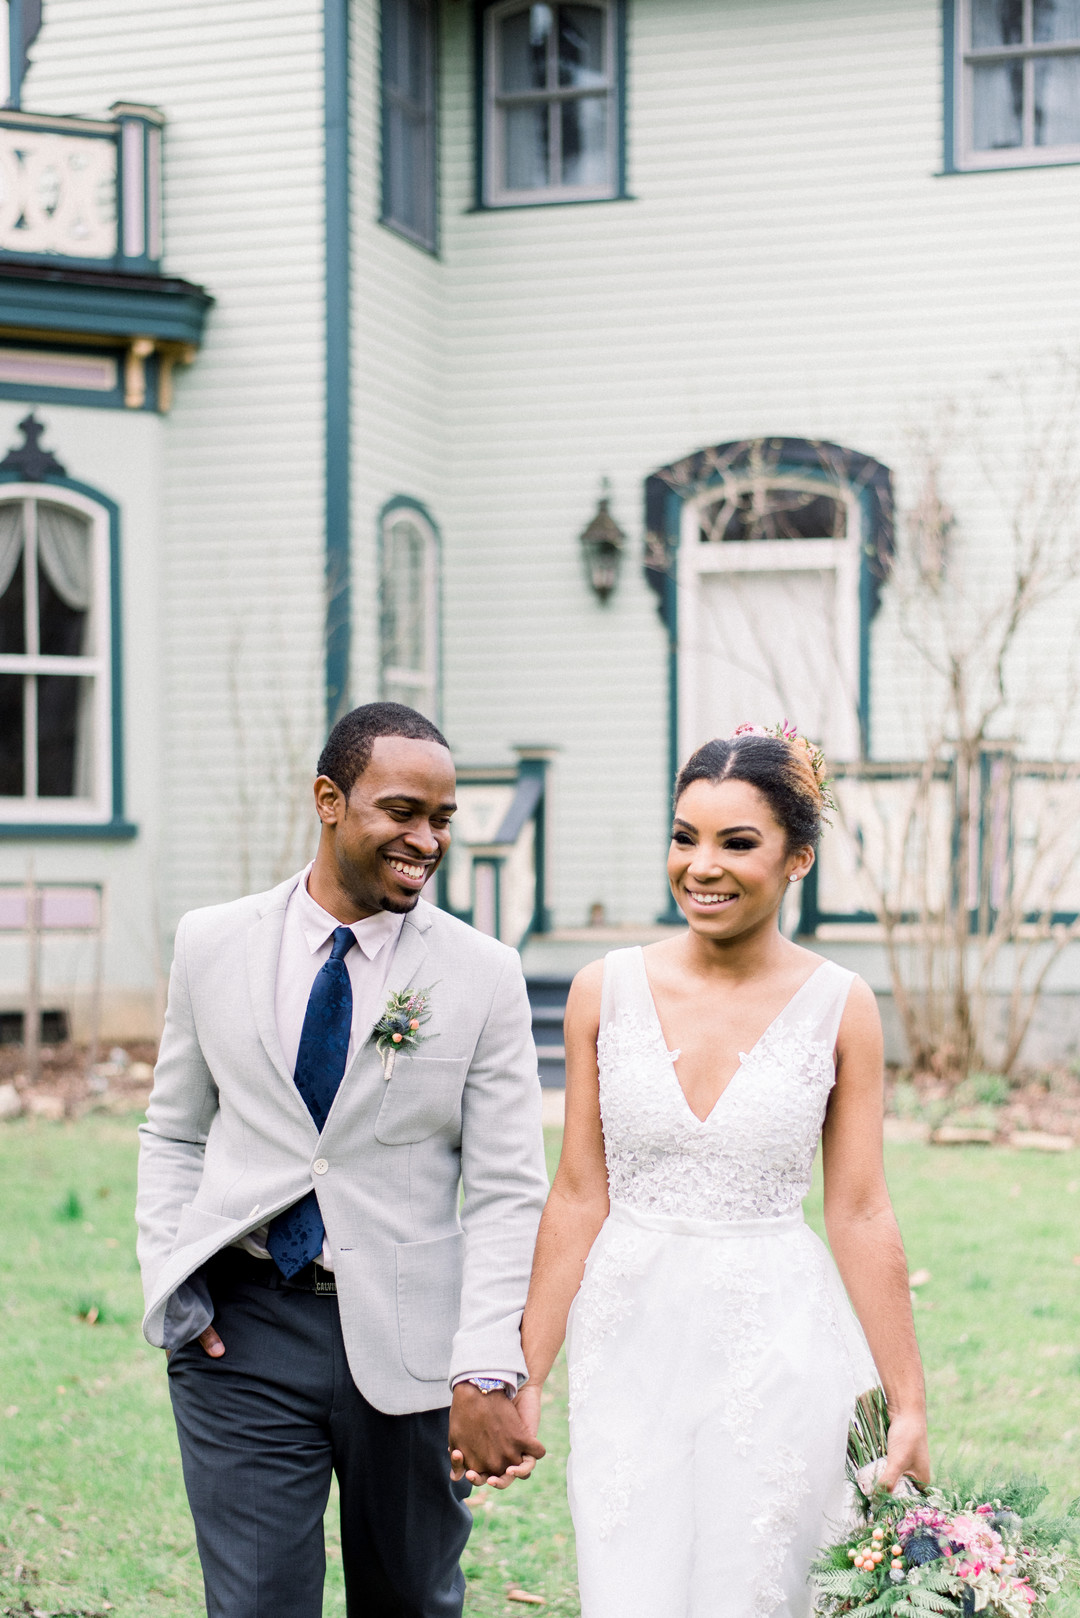 76jqbi0y47yq8a16h325_big Hot Springs, NC Wedding Inspiration at Mountain Magnolia Inn